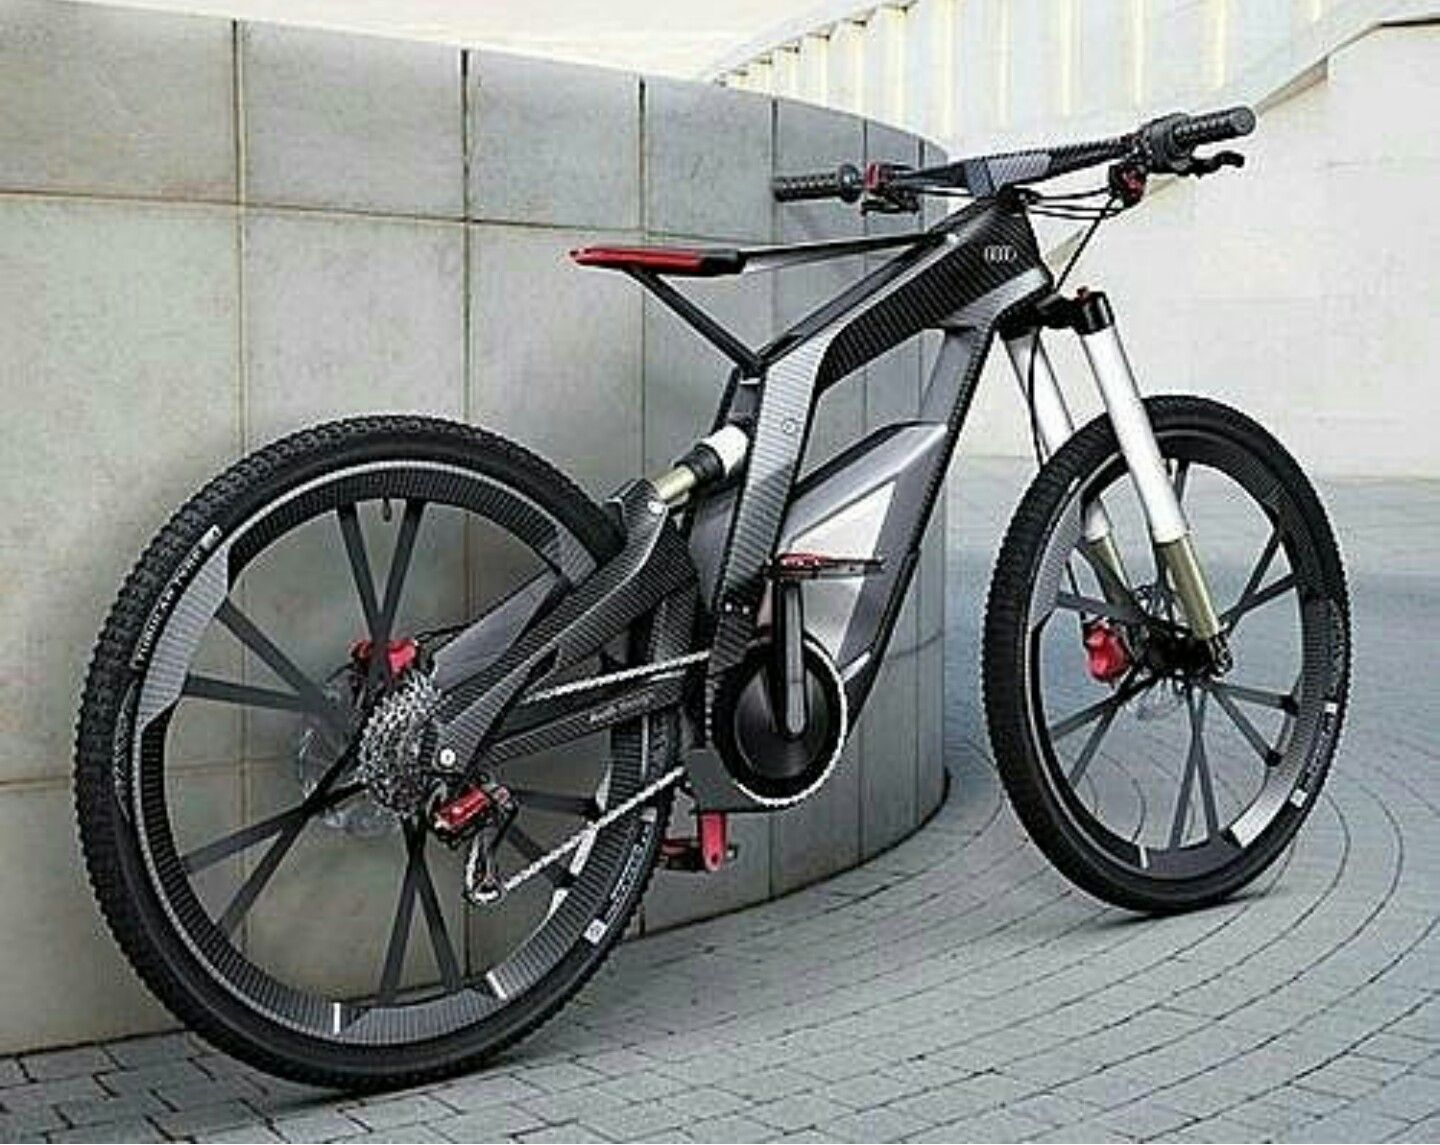 Pin By Djoa Dowski On Bycicle Bicycle Best Electric Bikes Bike